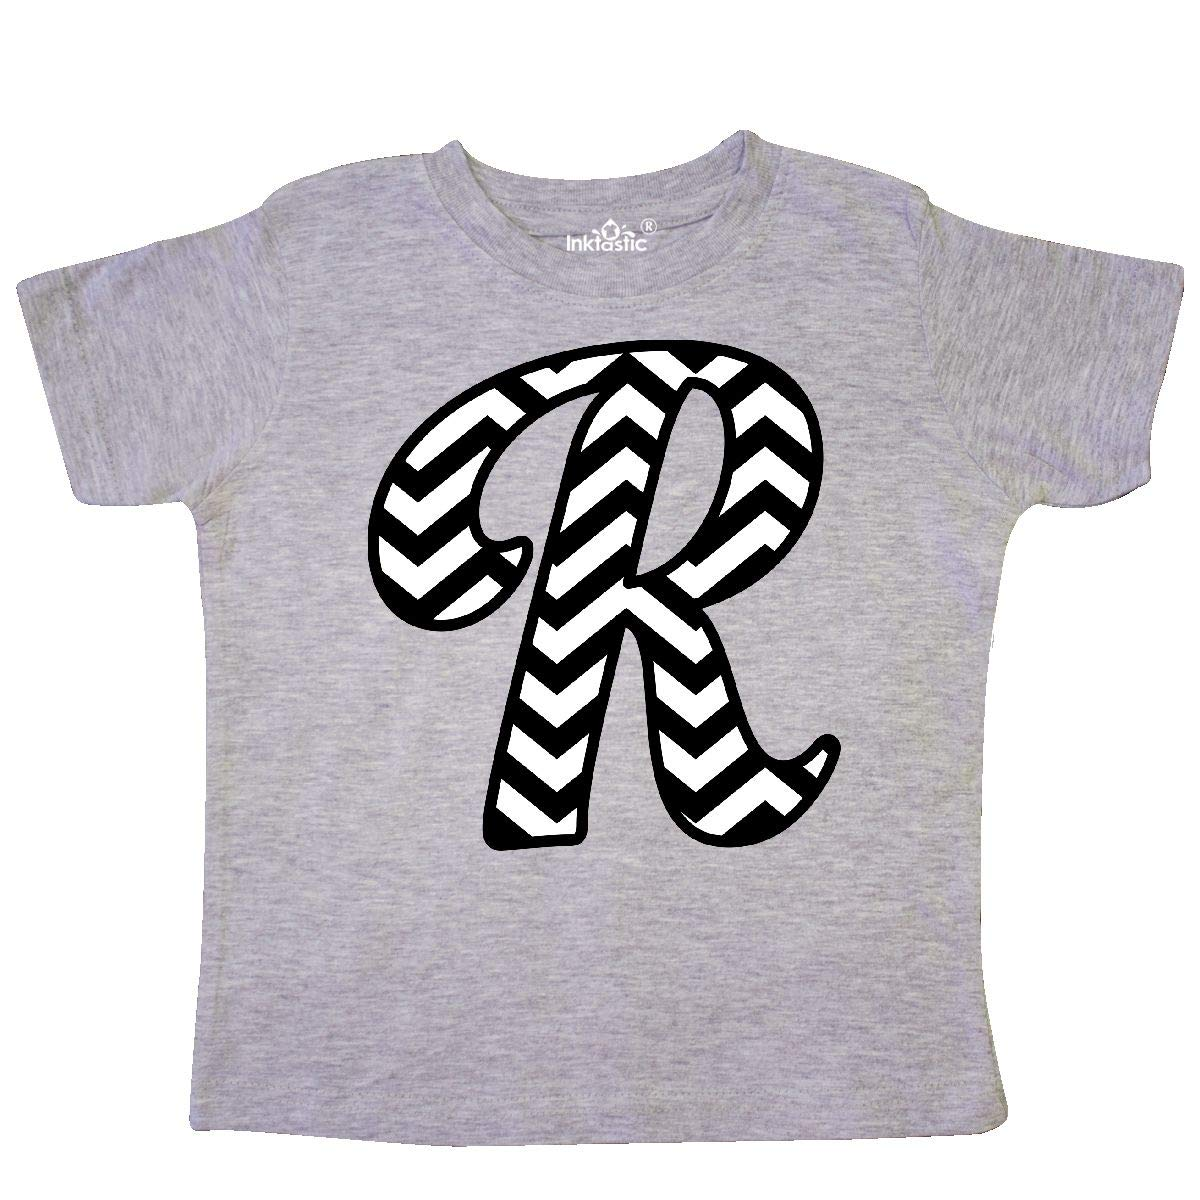 inktastic Monogram Letter R Chevron Toddler T-Shirt